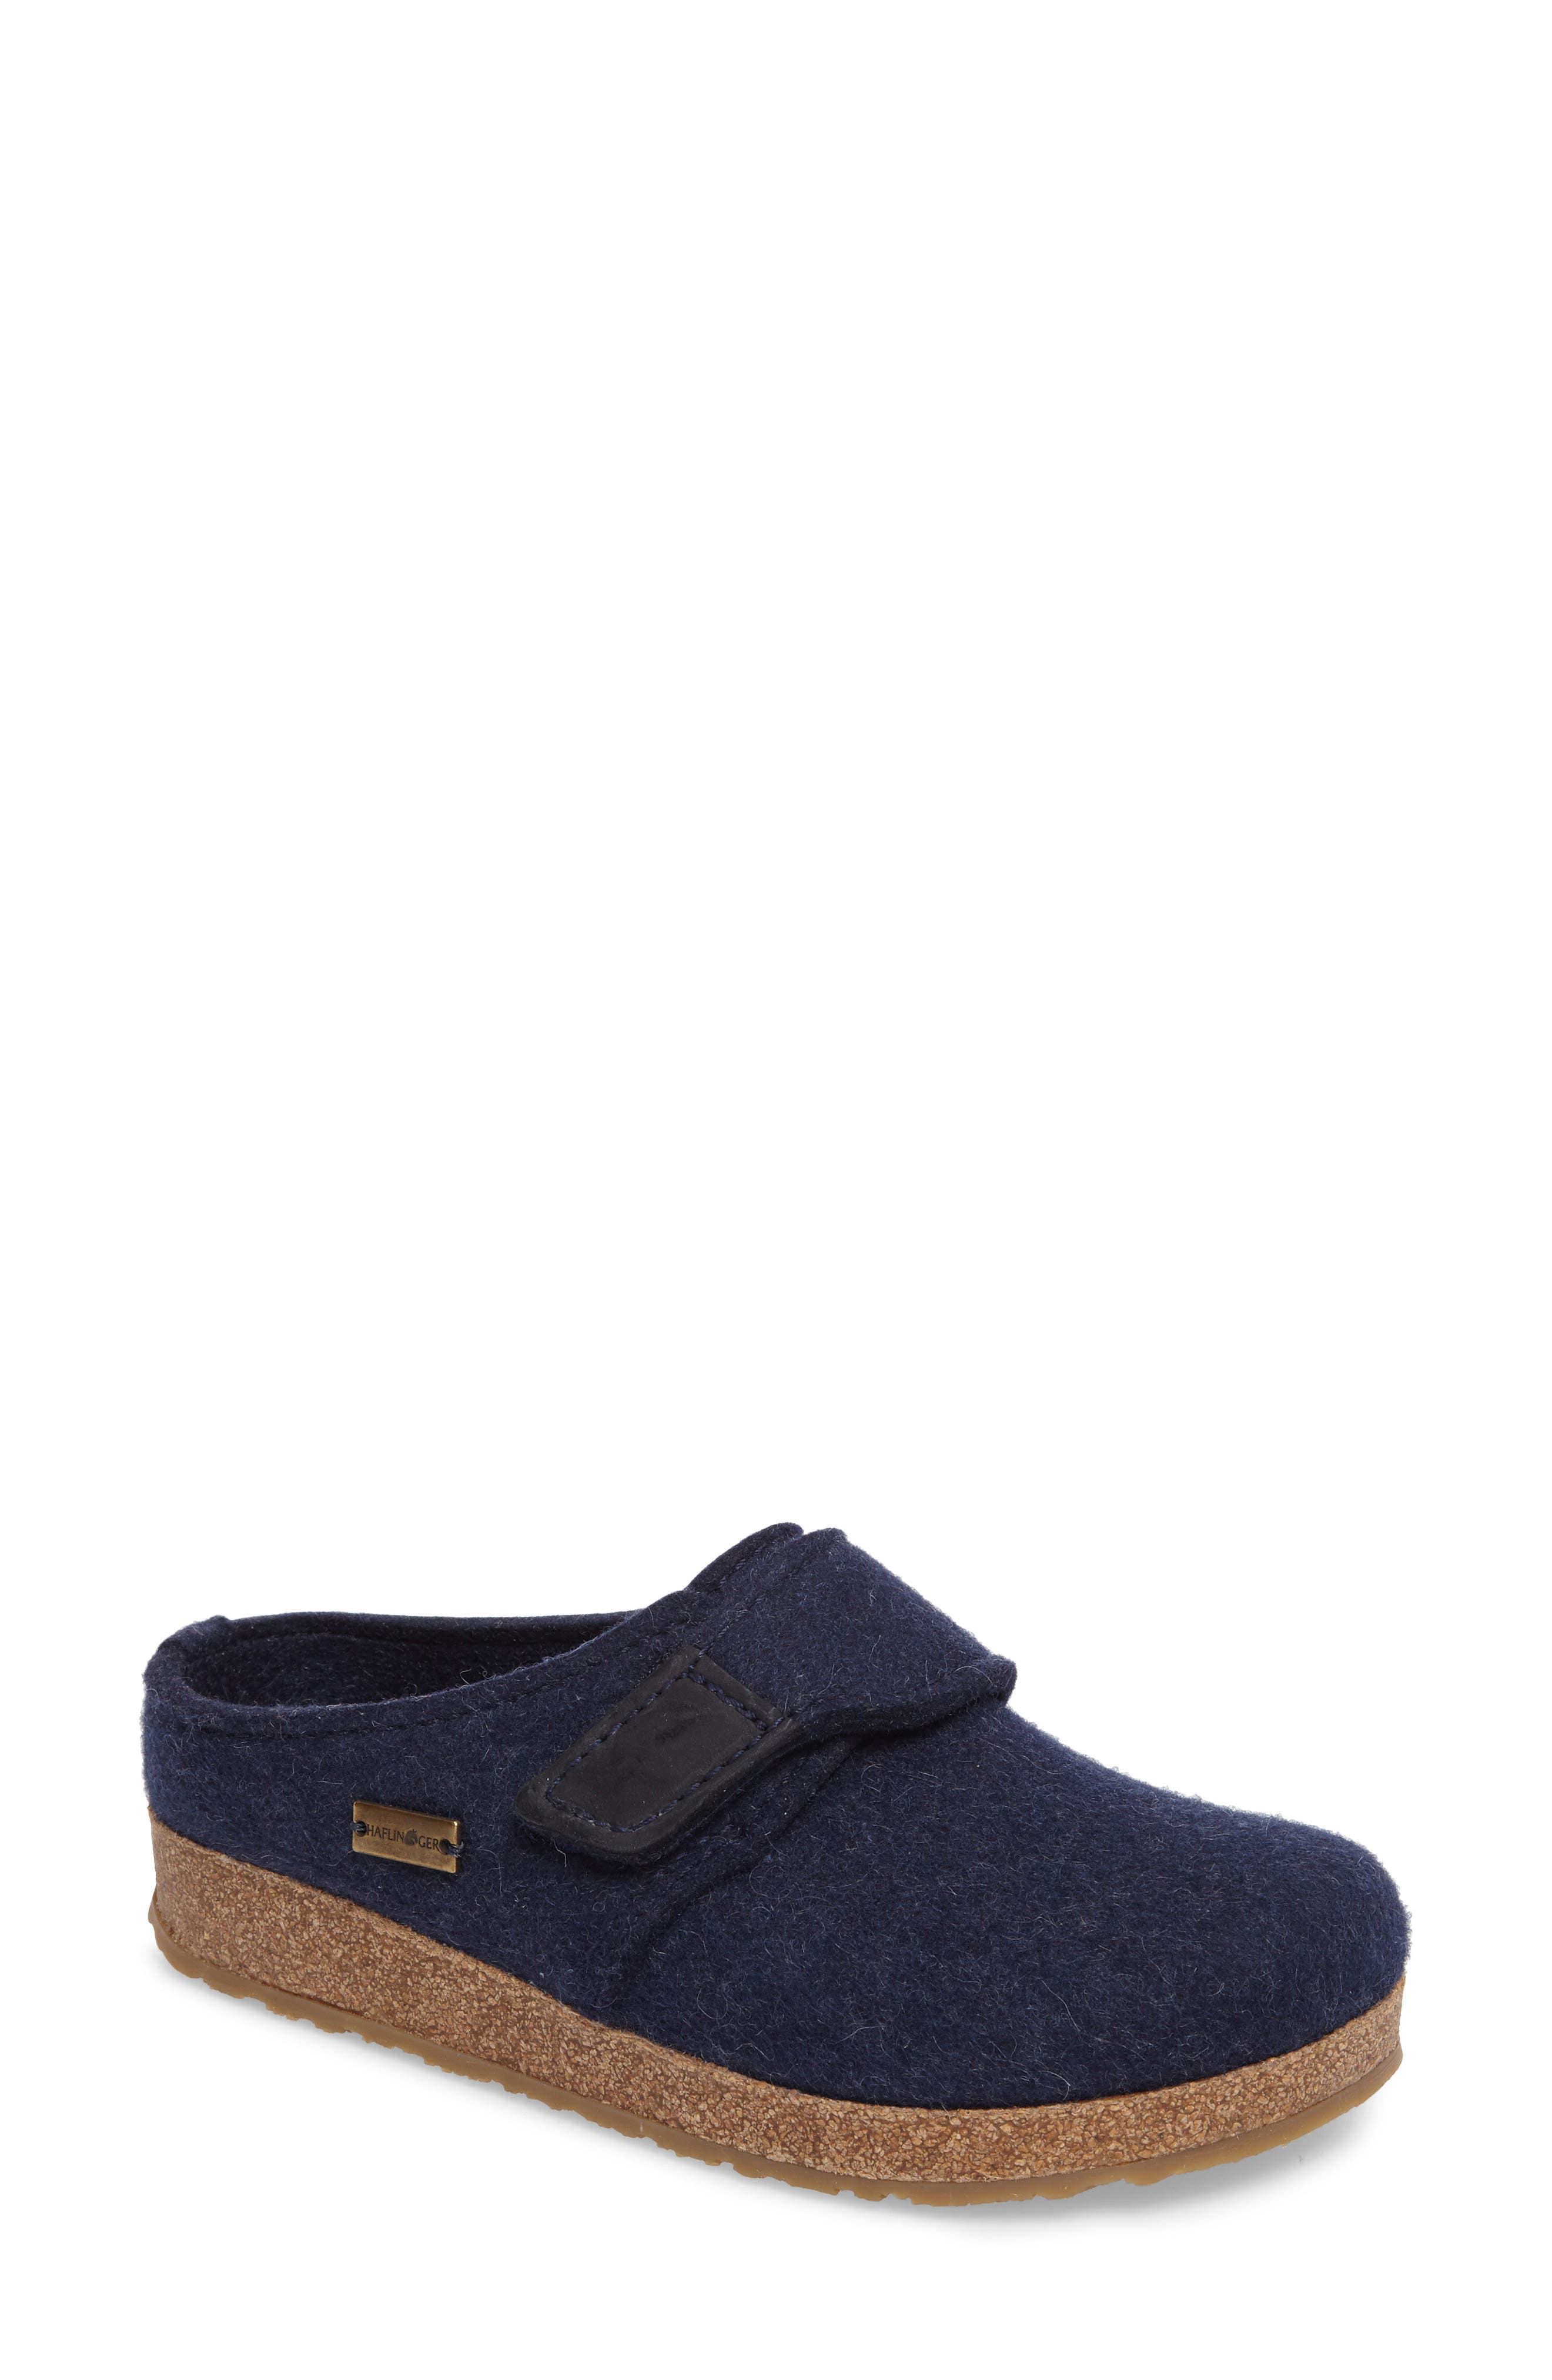 Grizzly Journey Clog Slipper,                         Main,                         color, Captains Blue Wool